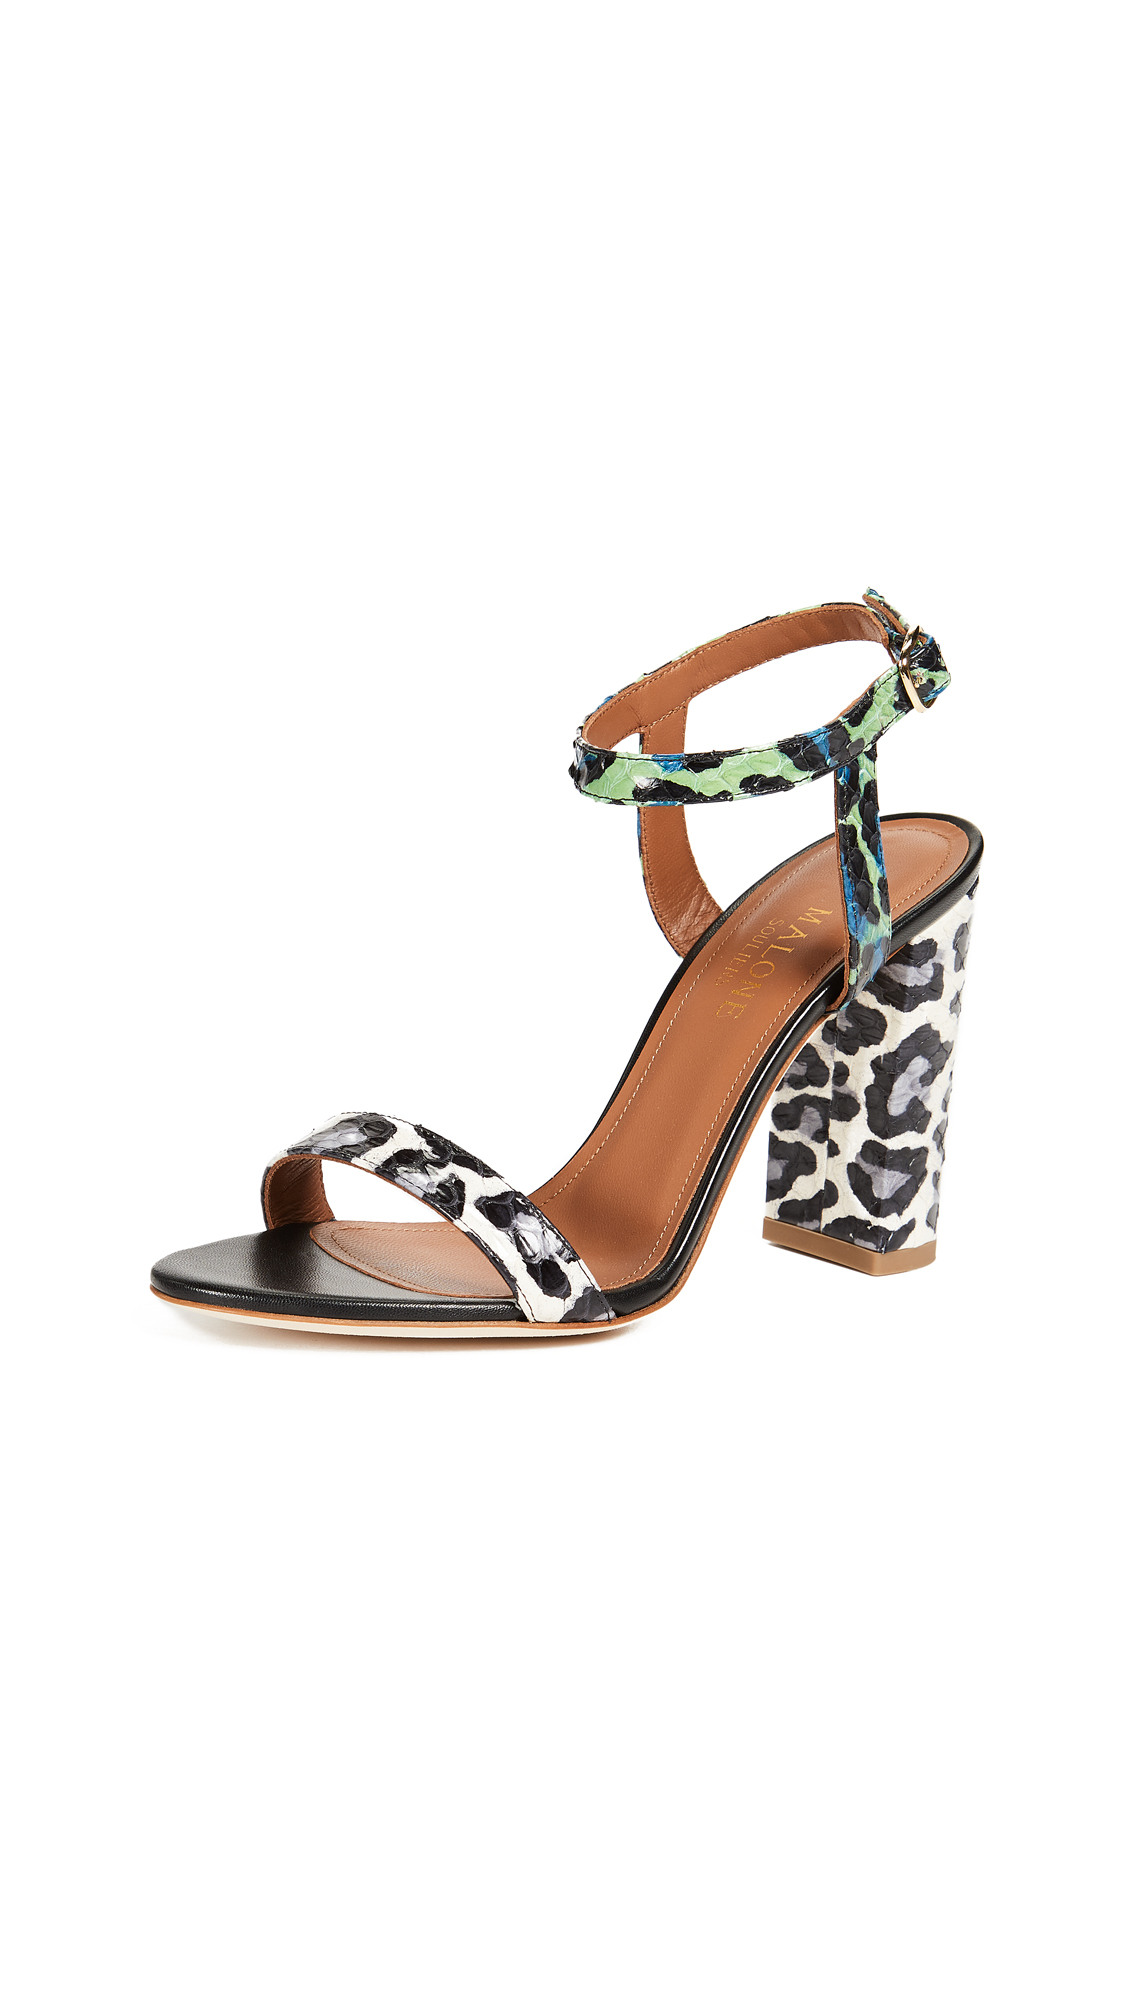 Malone Souliers Ladida Sandal - Grey/Green Leopard/Black